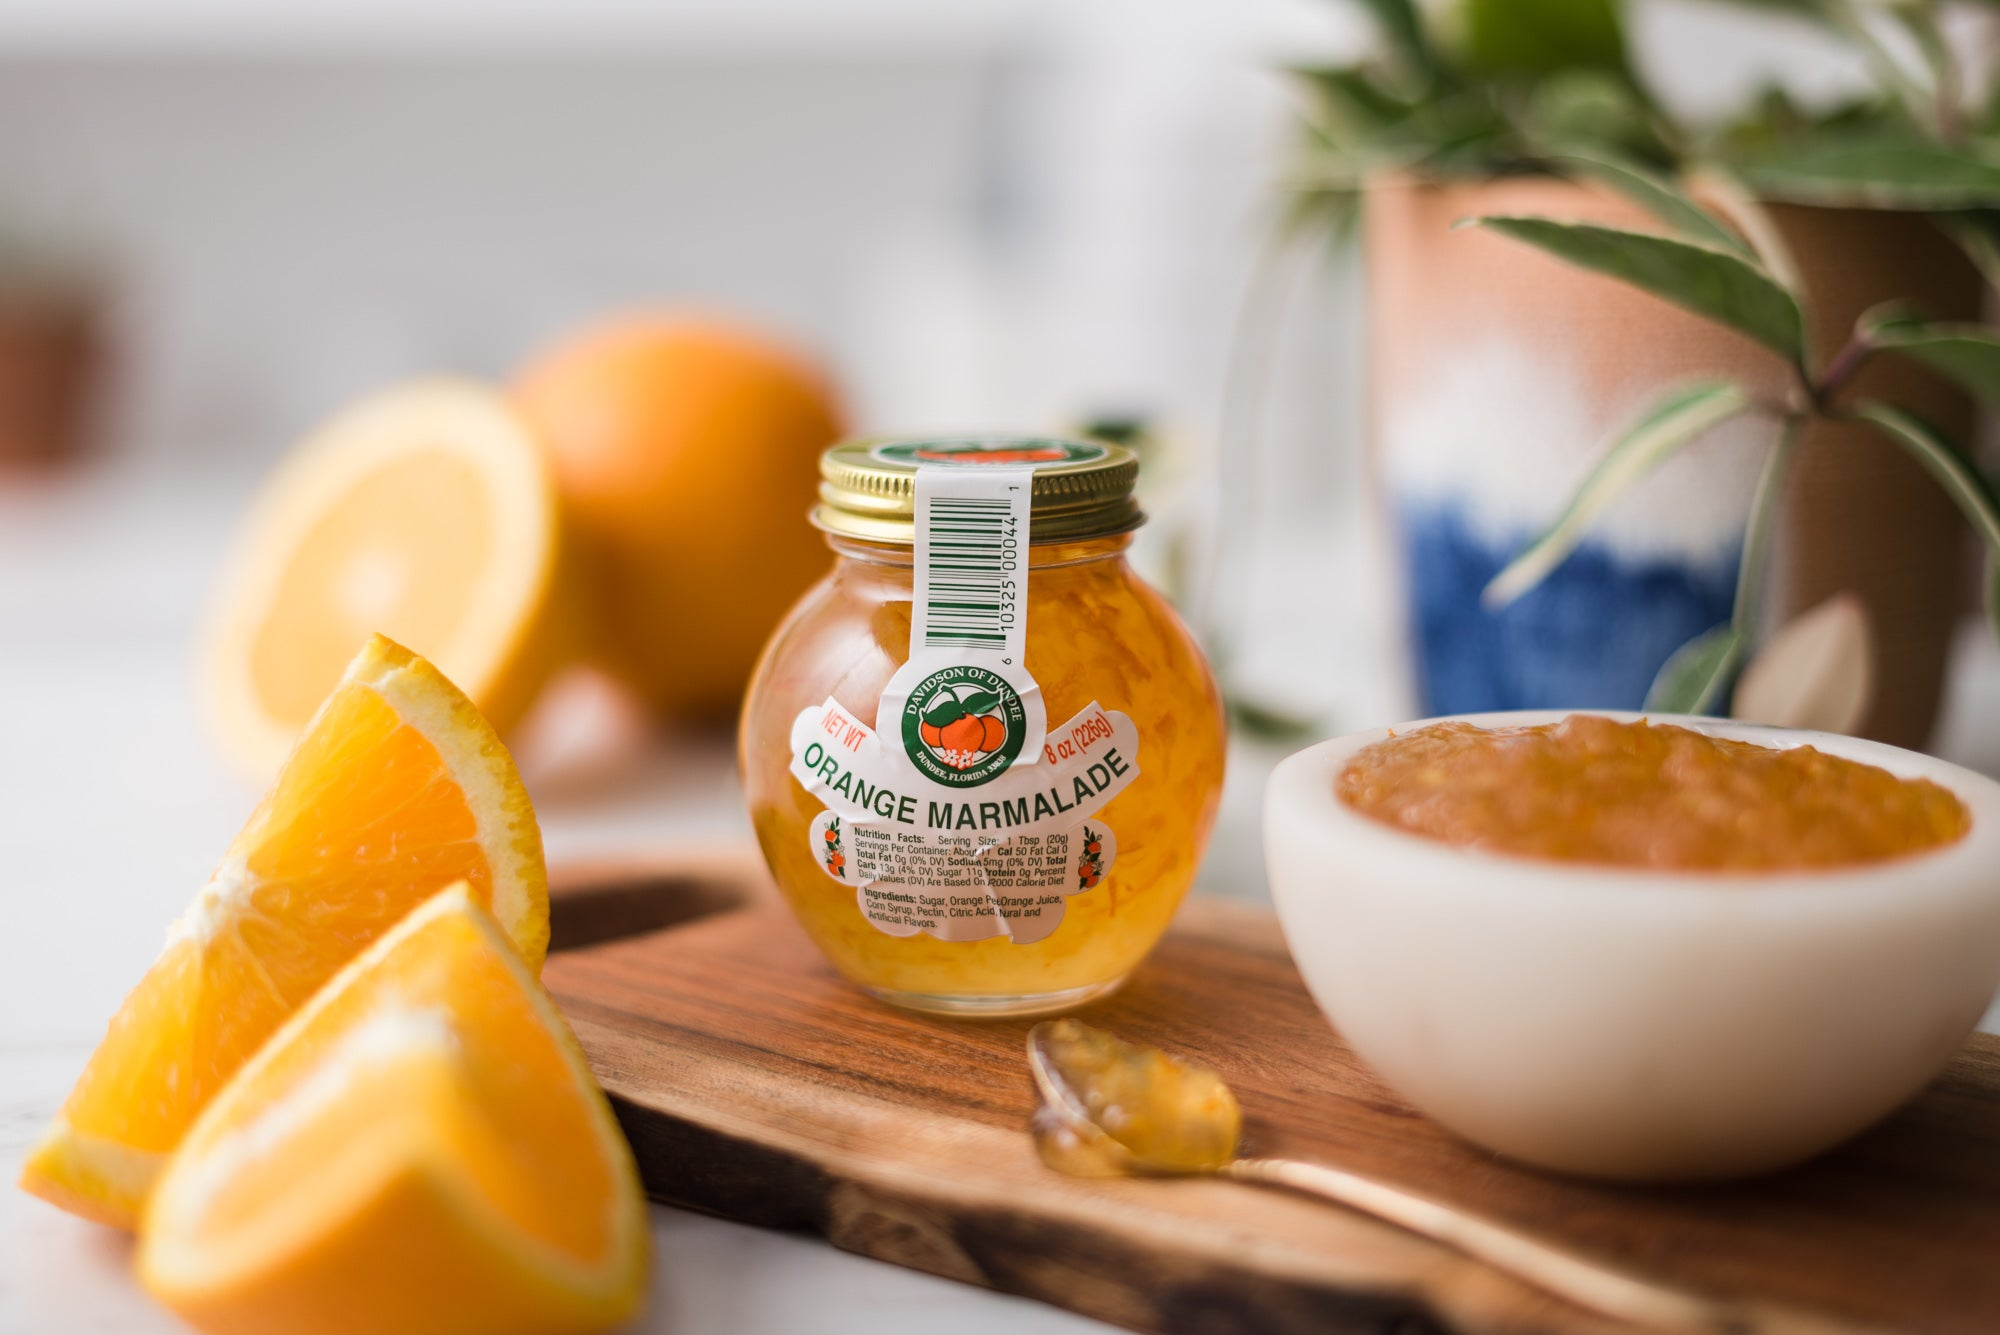 <a target='_blank' href='https://www.davidsonofdundee.com/collections/jellies-marmalades-and-butters/products/florida-favorites-pack-16-oz'>Davidson of Dundee Orange Marmalade</a>